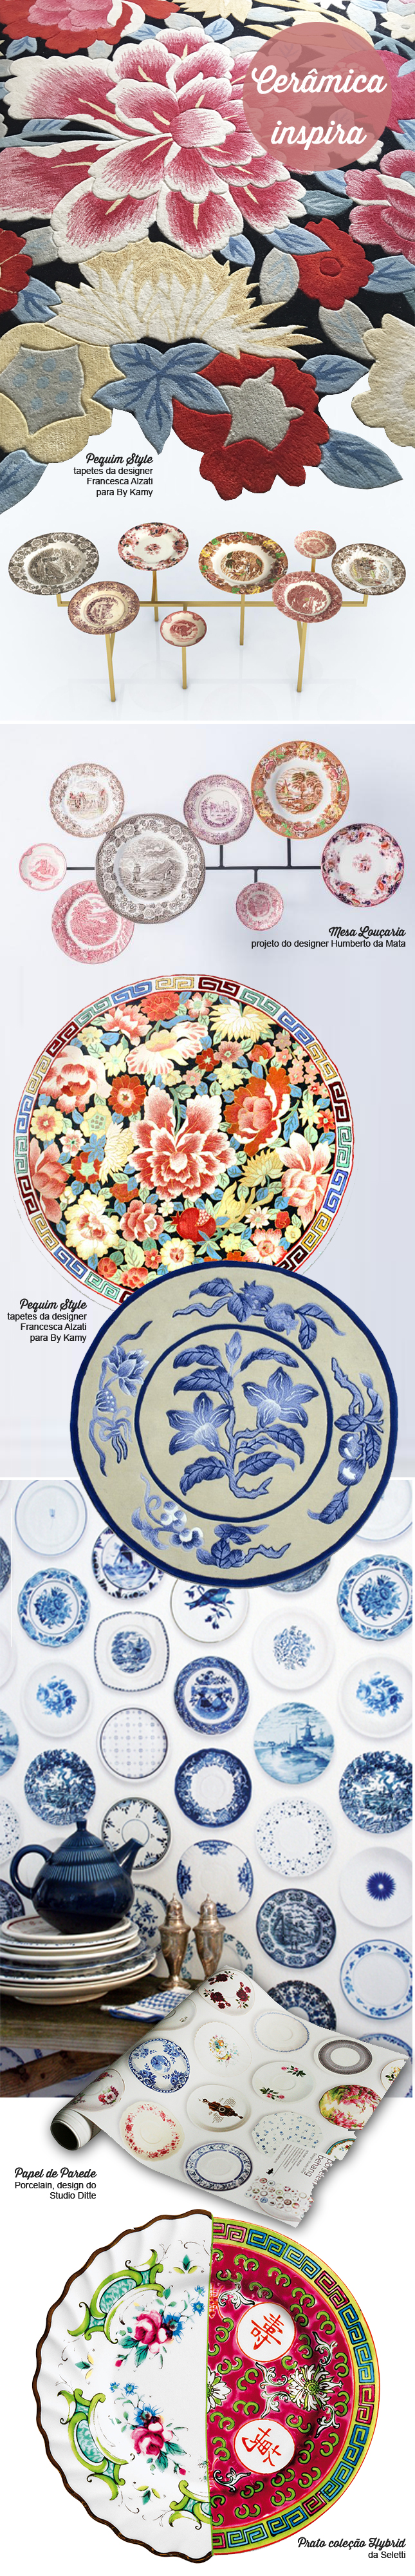 decoradornet_copyright-ceramica-na-decoracao-blog